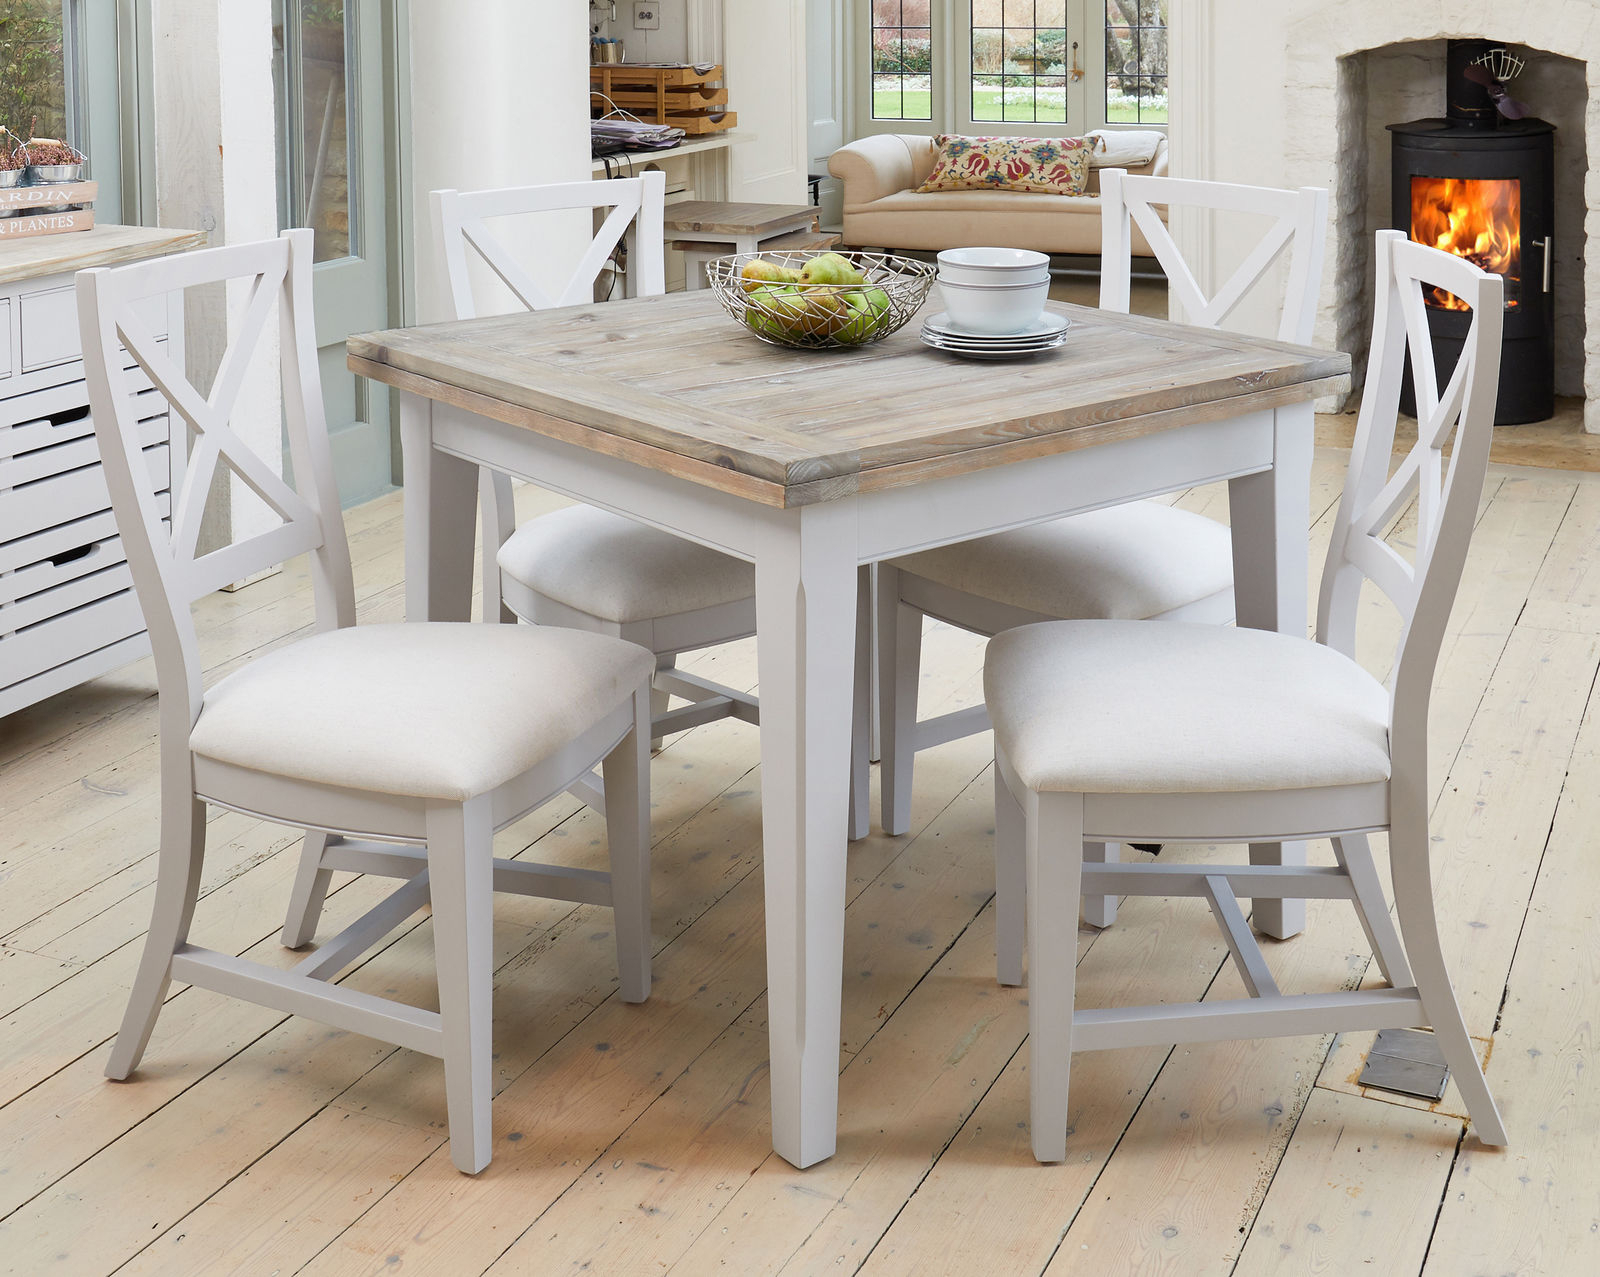 Langton Grey Painted Furniture Square Extending 4 To 6 Seater Dining Table Throughout Most Recently Released Langton Reclaimed Wood Dining Tables (View 6 of 25)